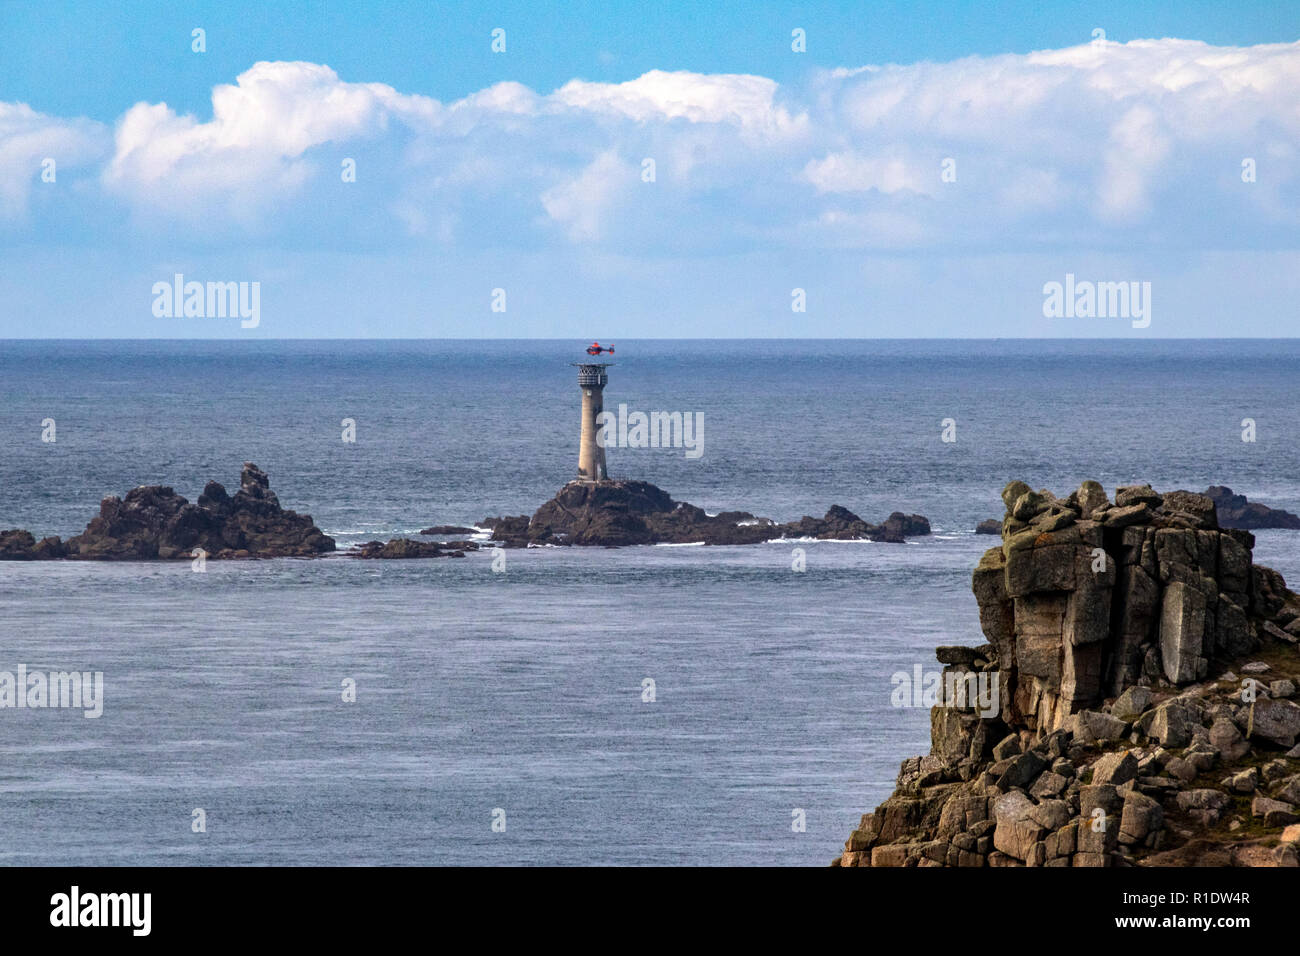 Longship Lighthouse with approaching Helicopter; Carn Bras, Longship Rocks Lighthouse, near Lands End, Cornwall, England. - Stock Image